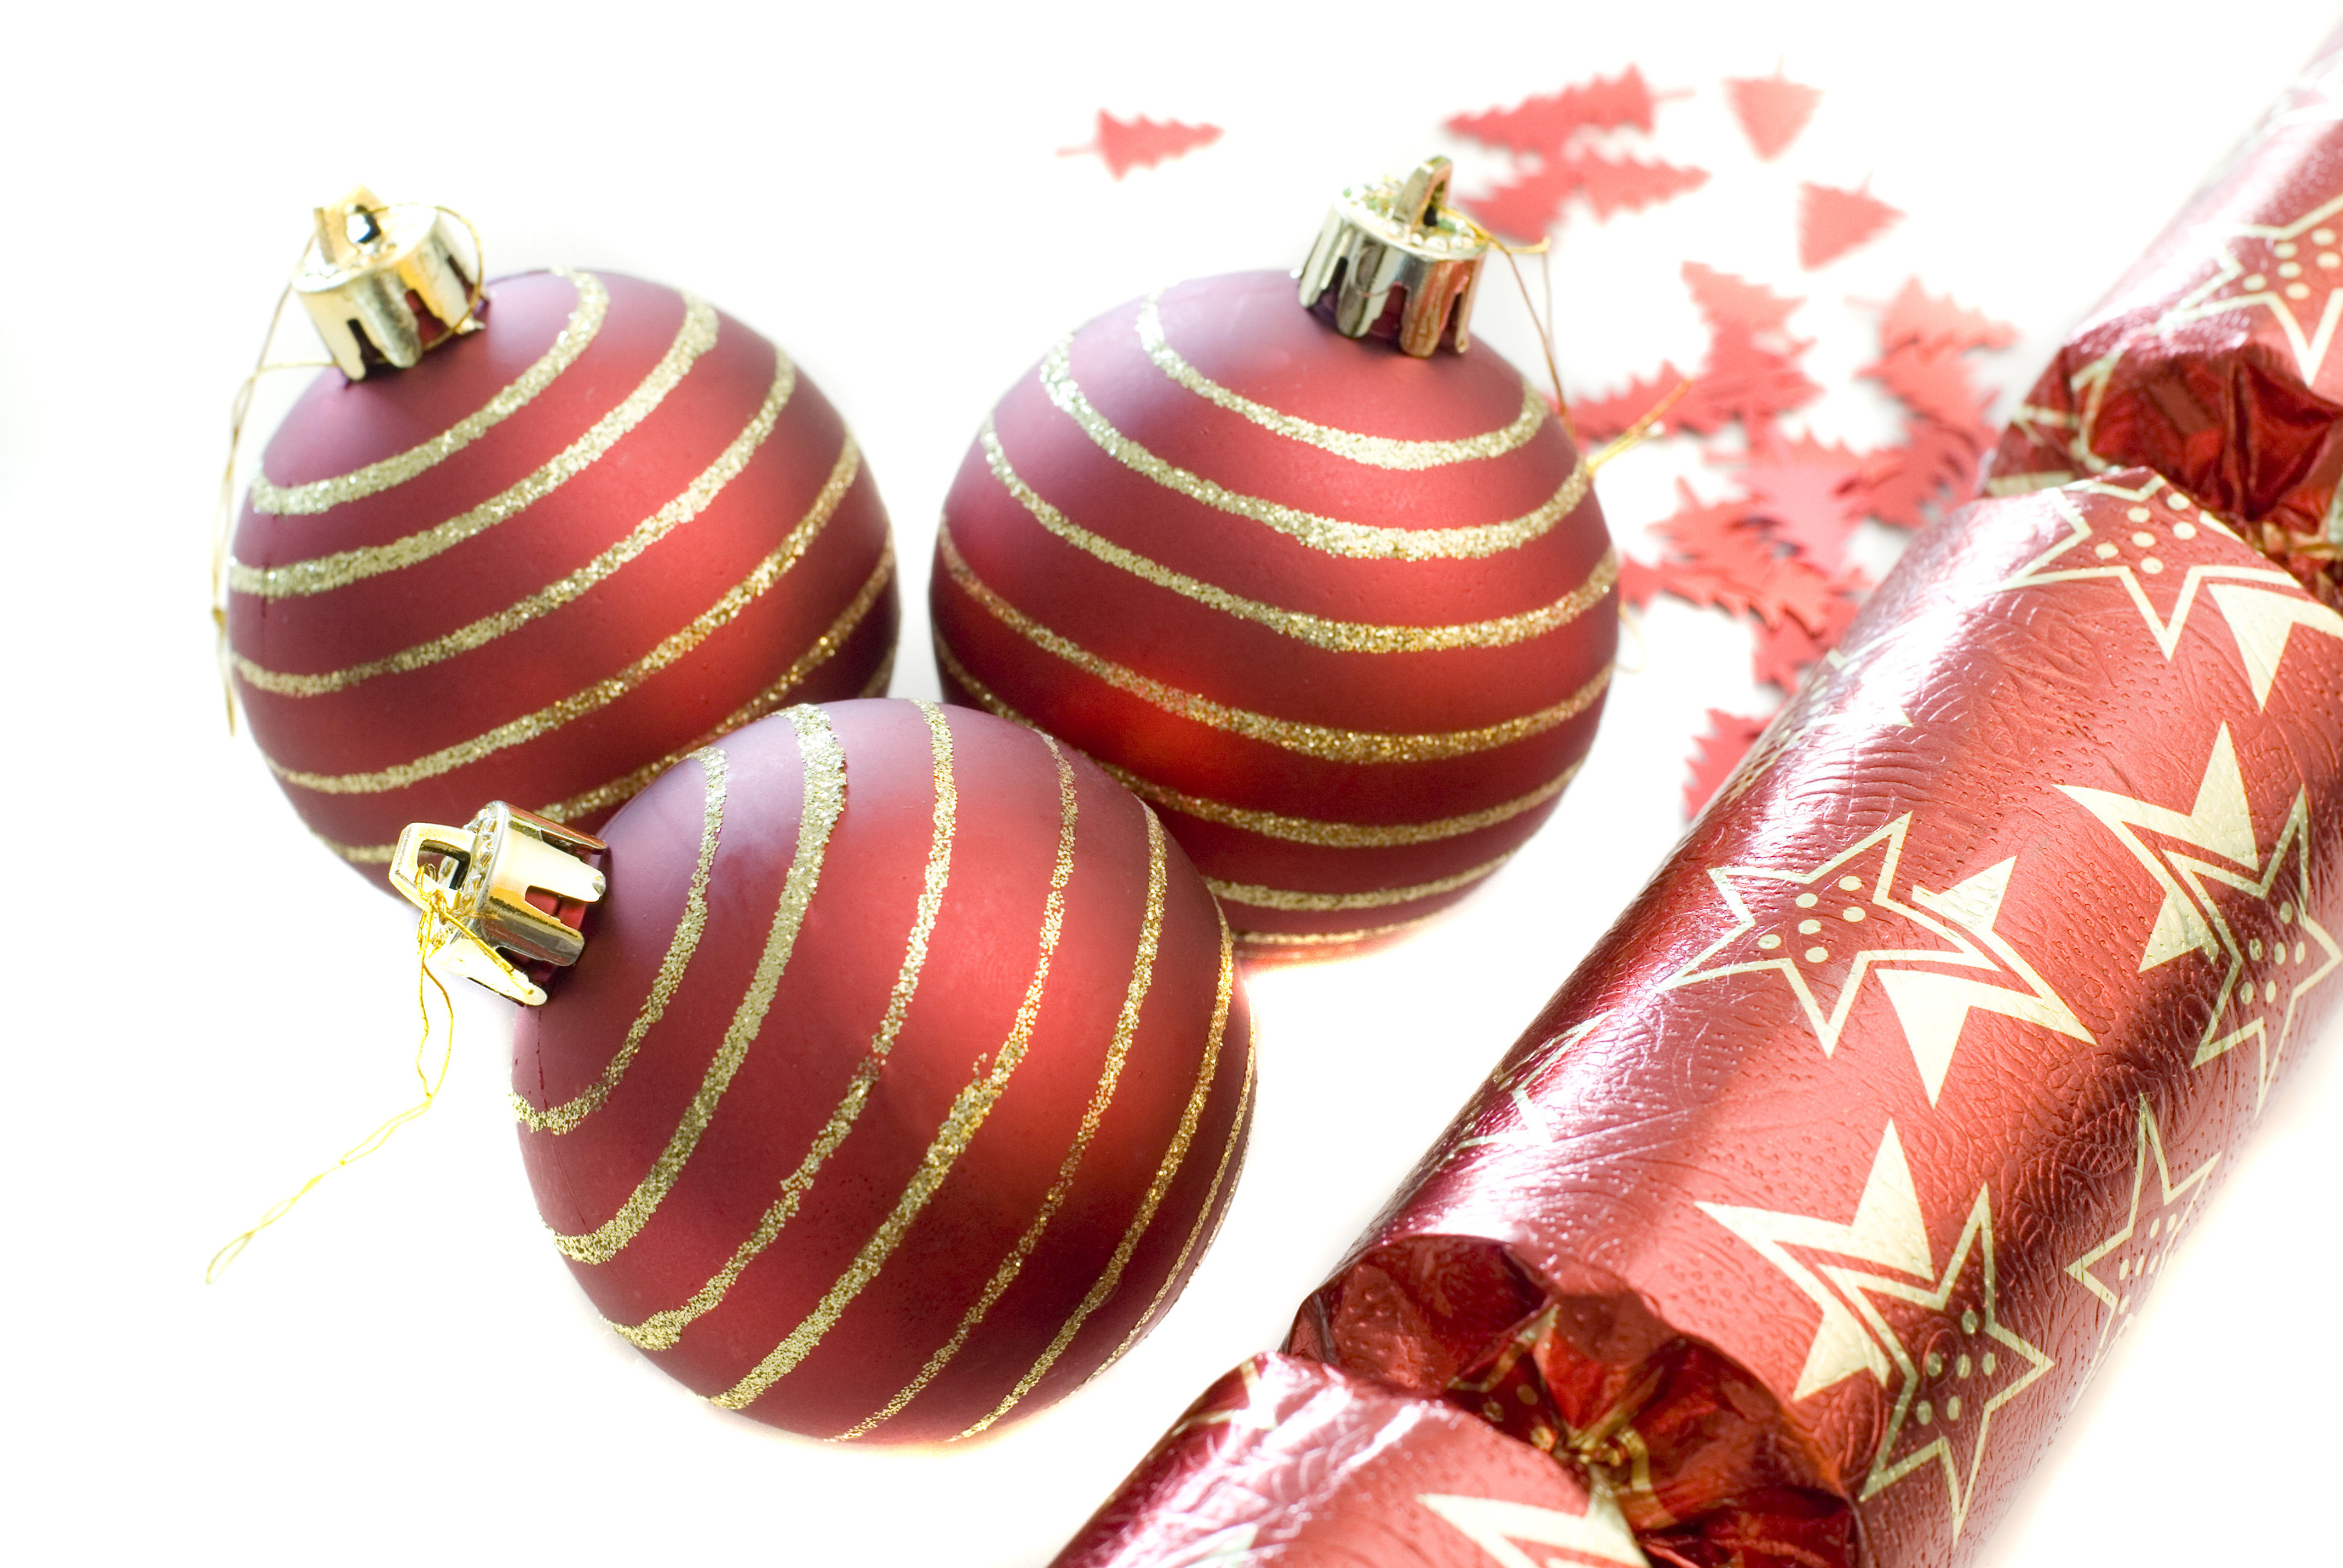 a selection of red coloured christmas baubles cutout on white to form a decorative corner